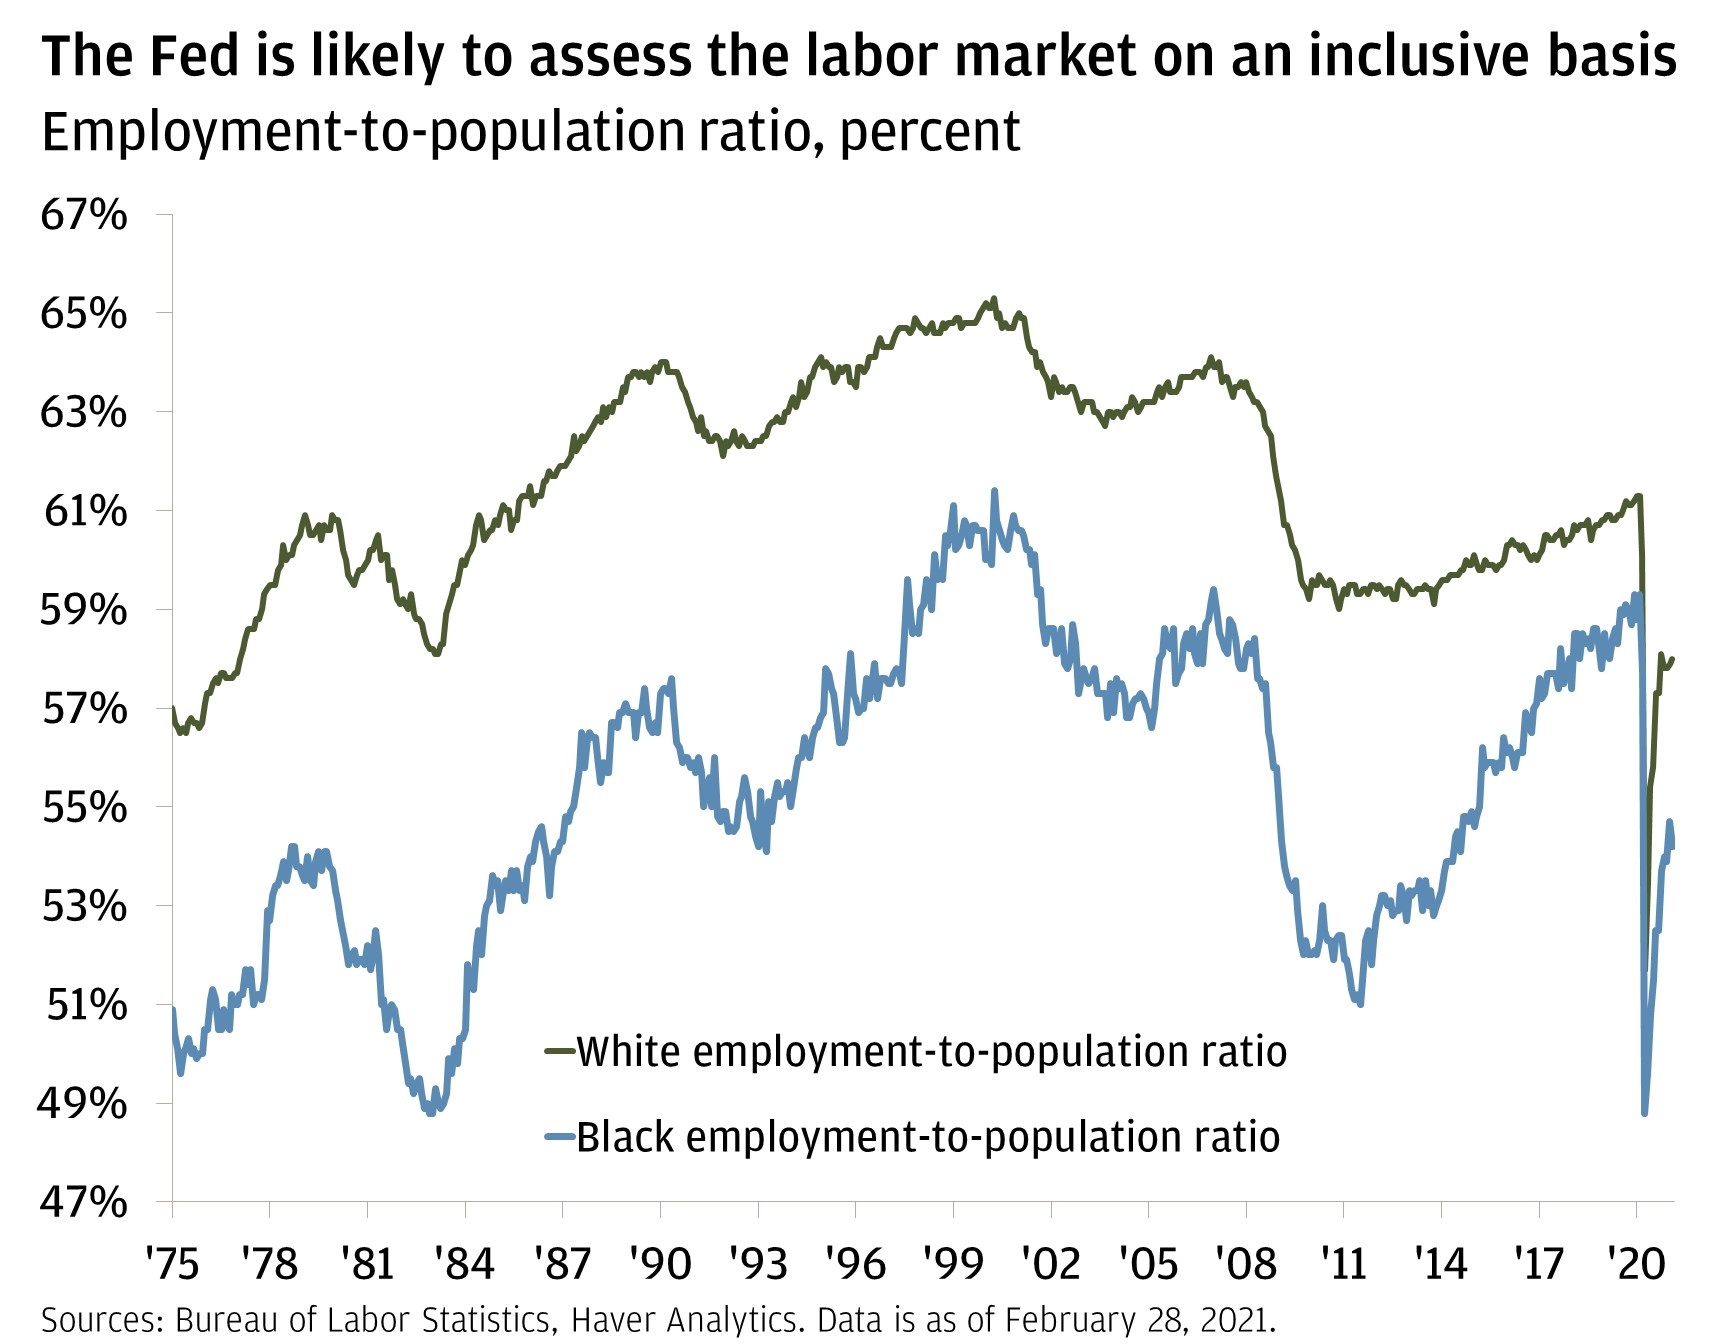 Chart 2: This chart shows the employment-to-population ratio for Black and White Americans